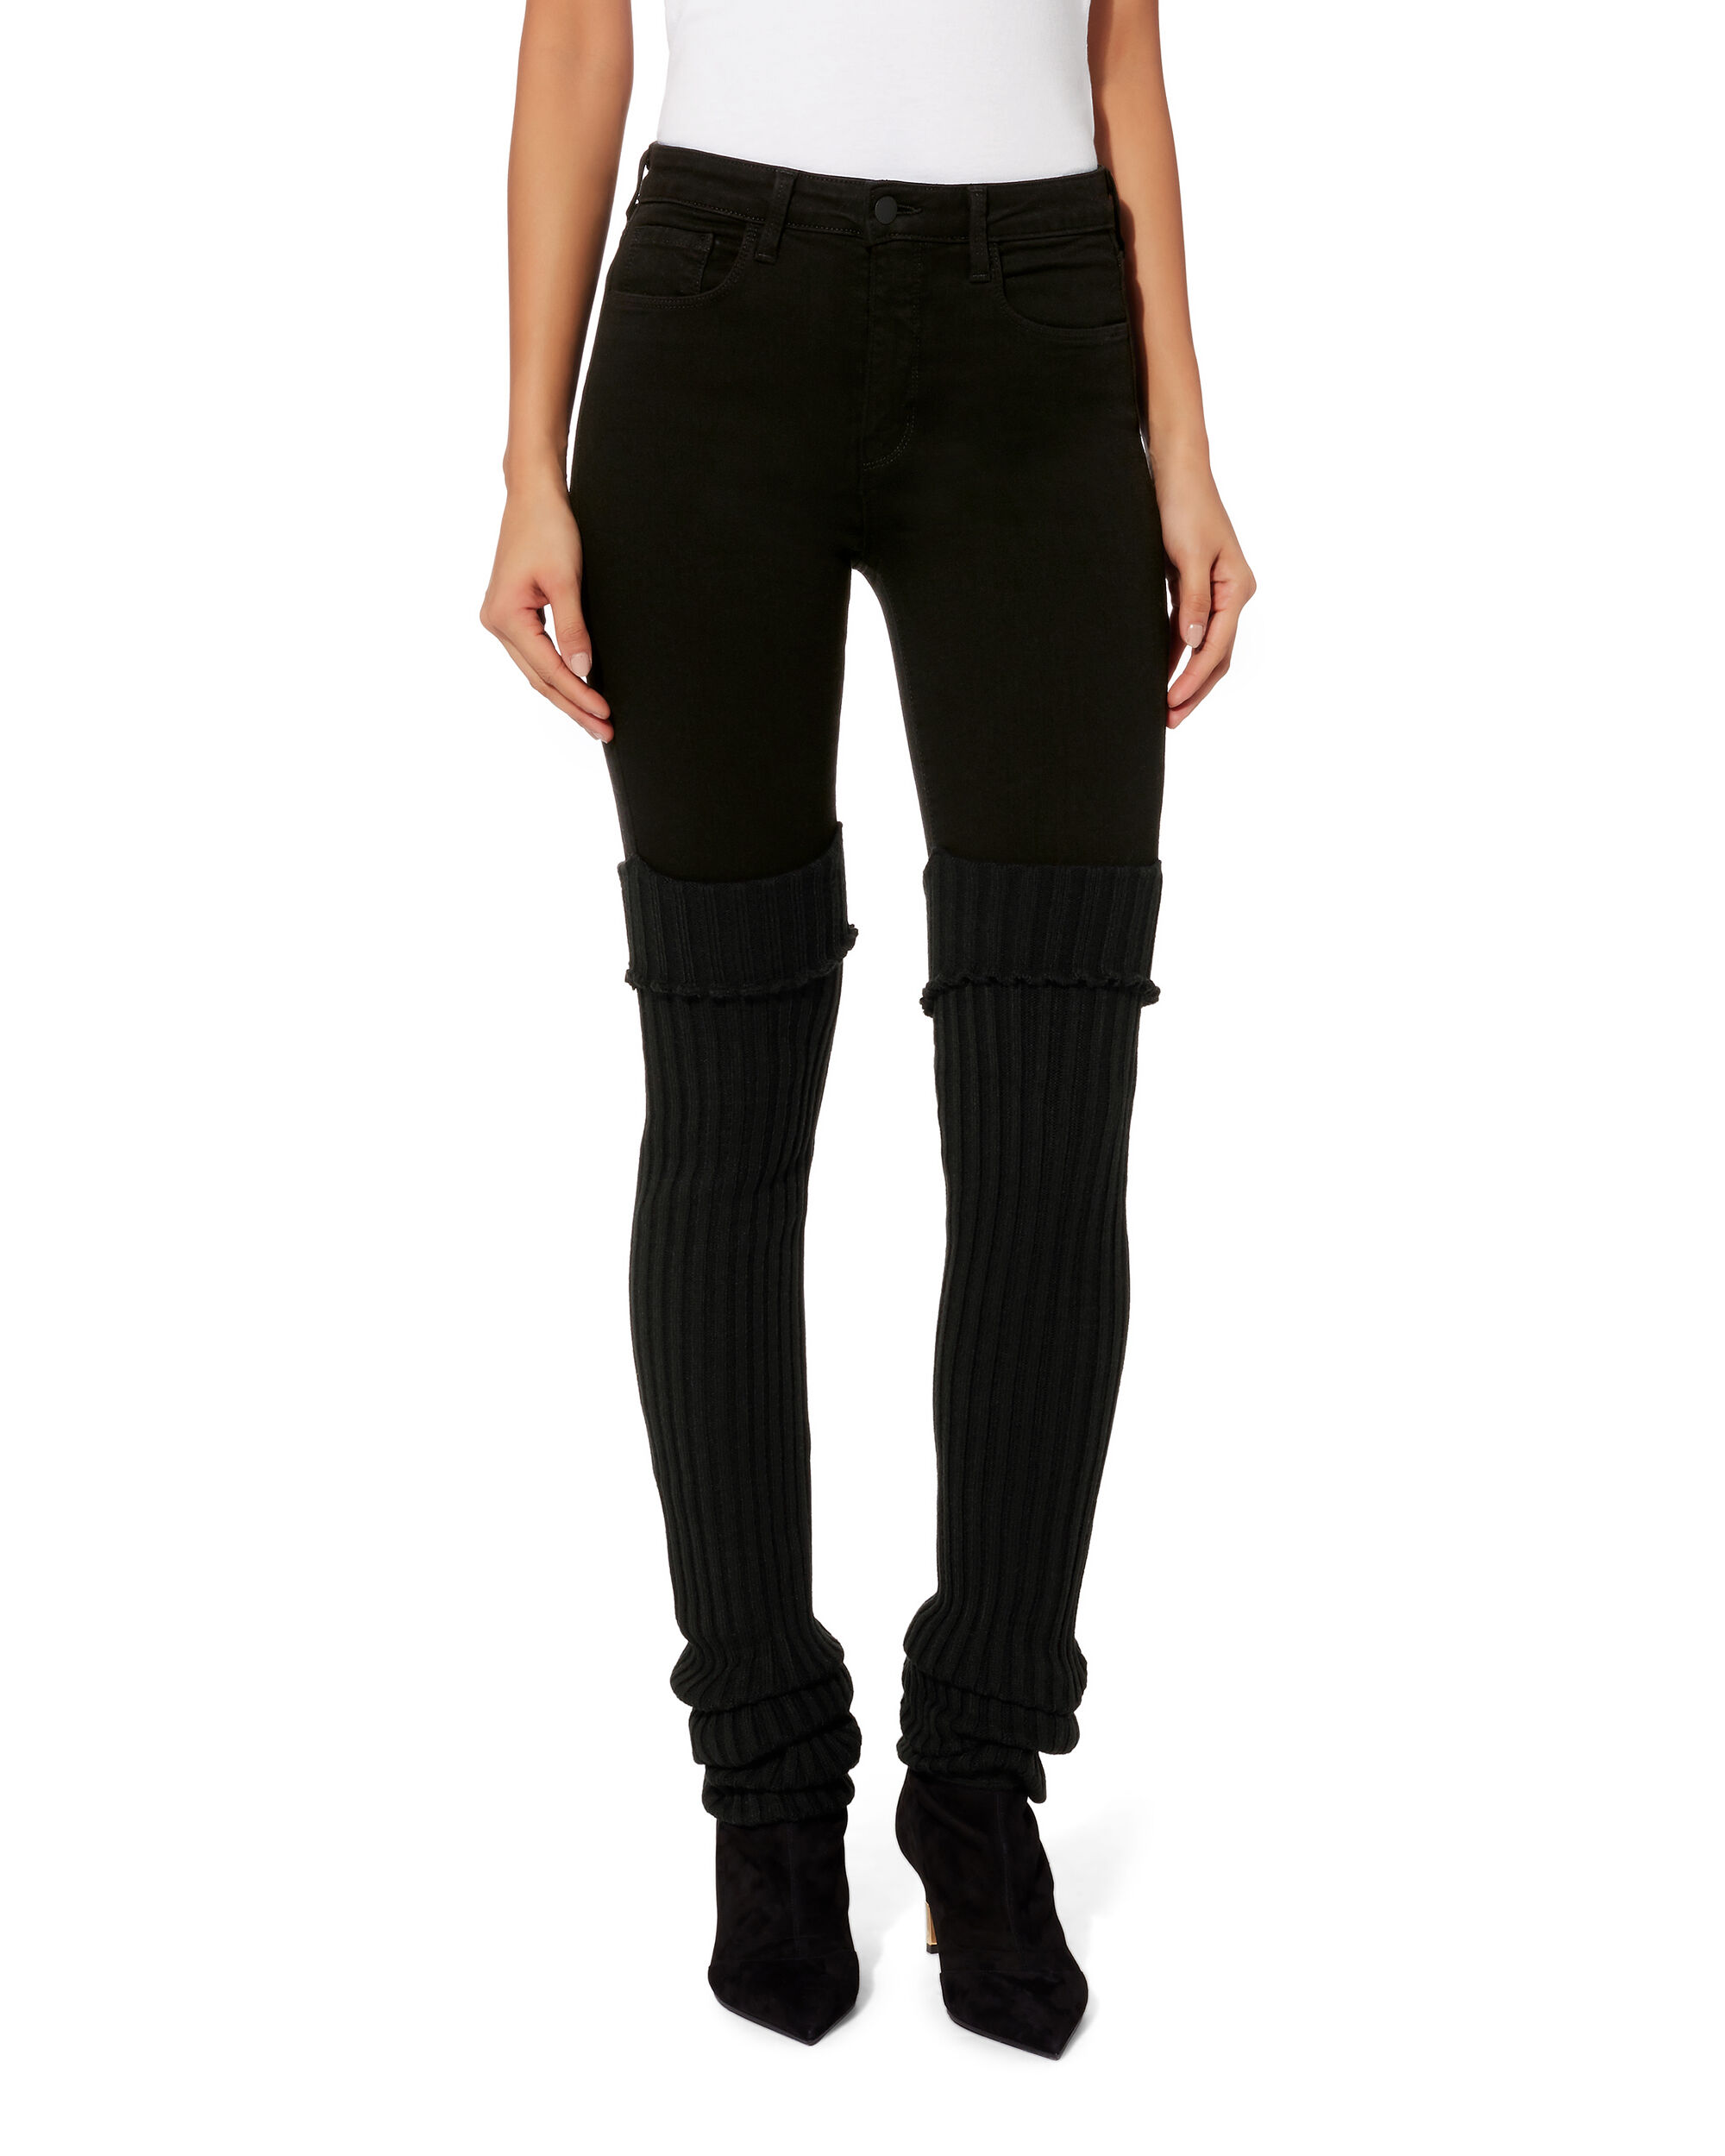 High-Rise Leg Warmer Skinny Jeans, BLACK, hi-res